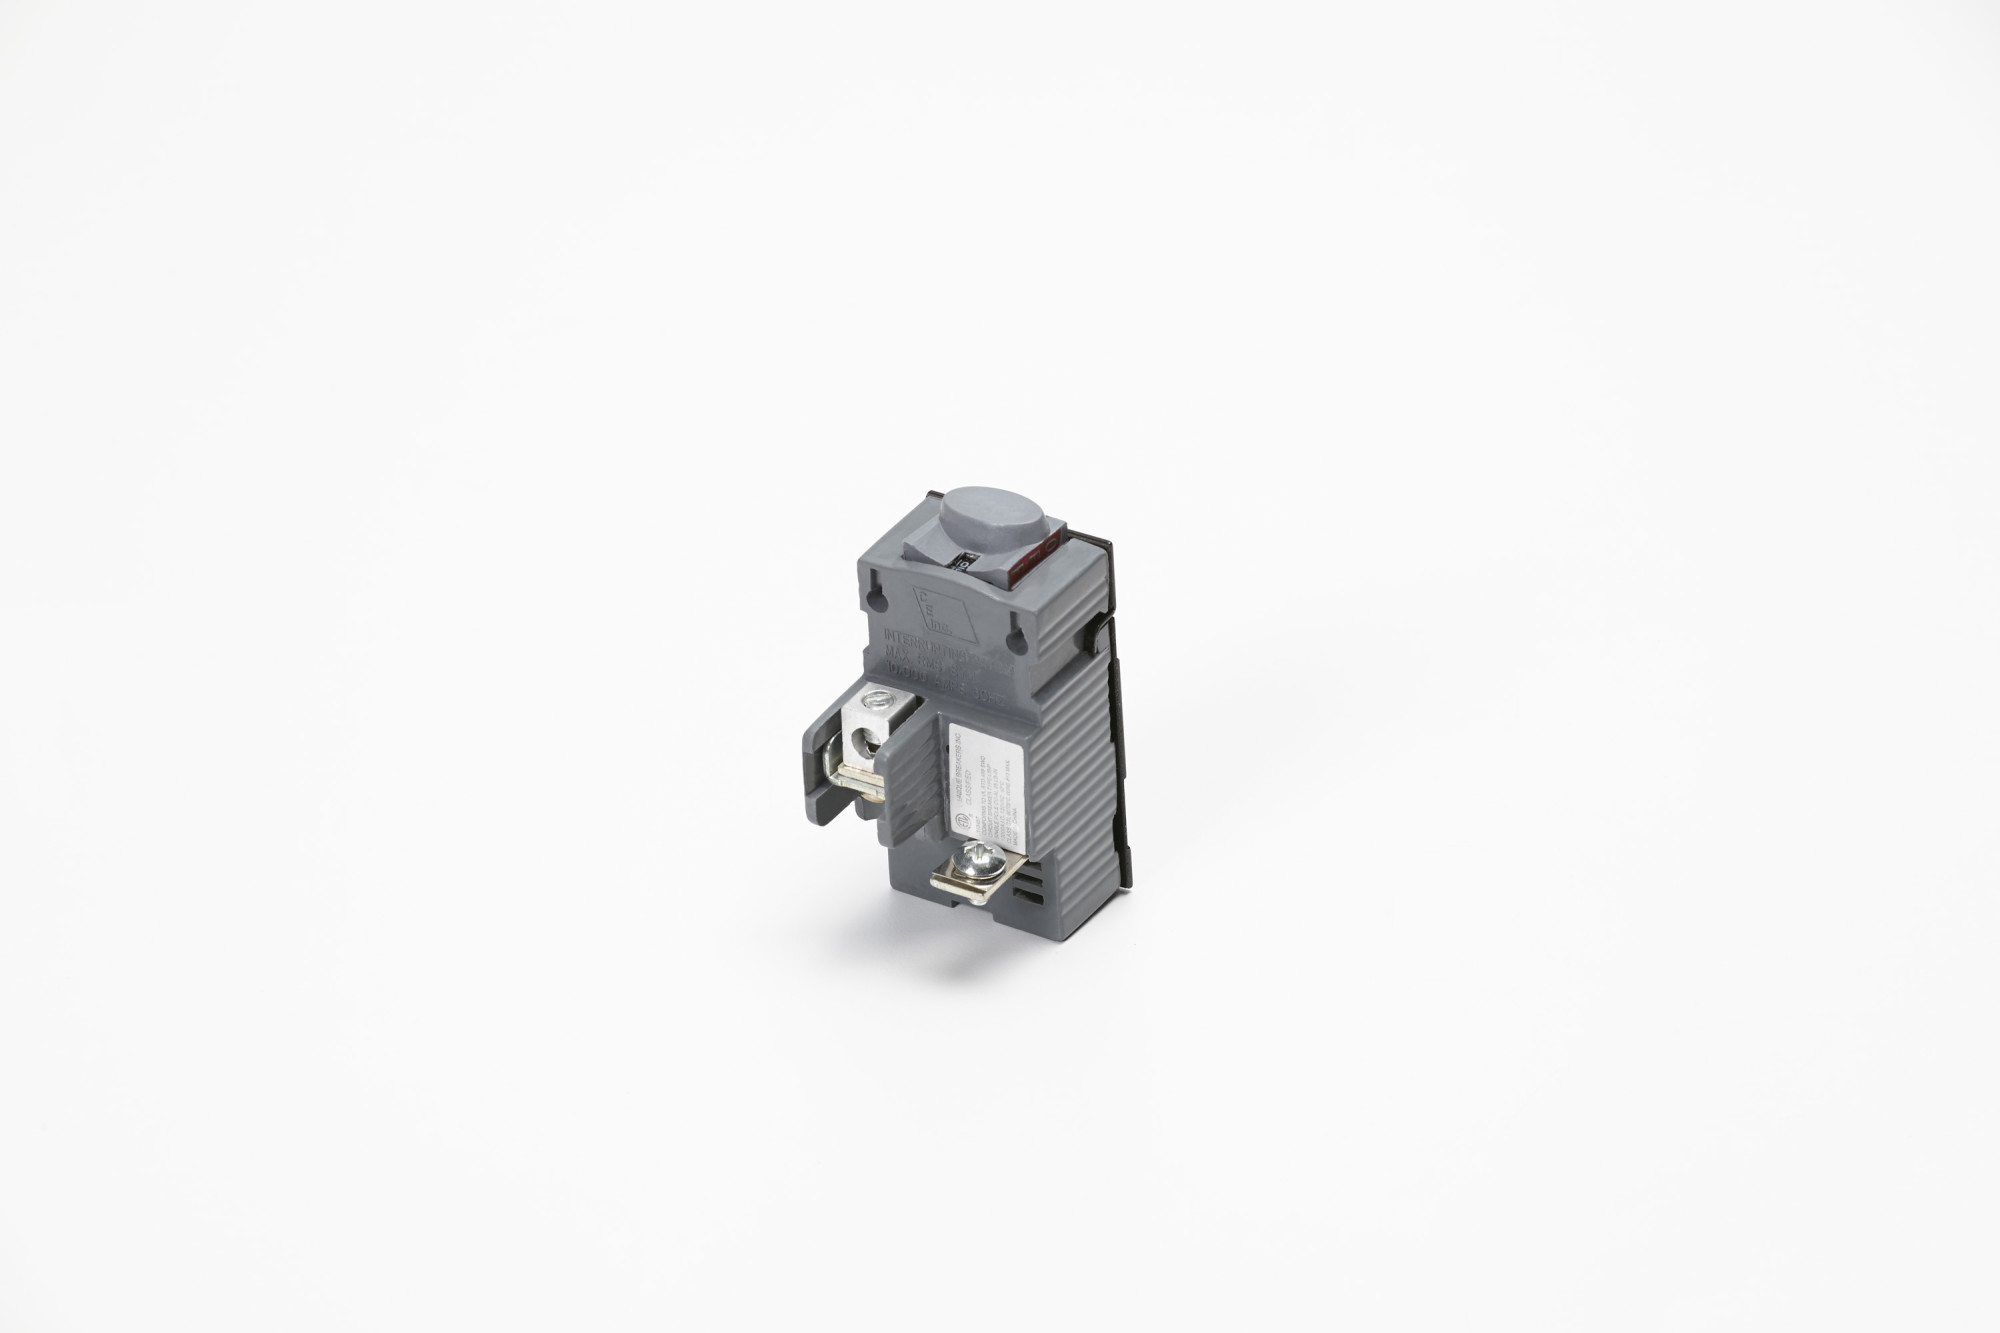 UBIP130-New Pushmatic P130 Replacement One Pole 30 Amp Circuit Breaker Manufactured by Connecticut Electric.